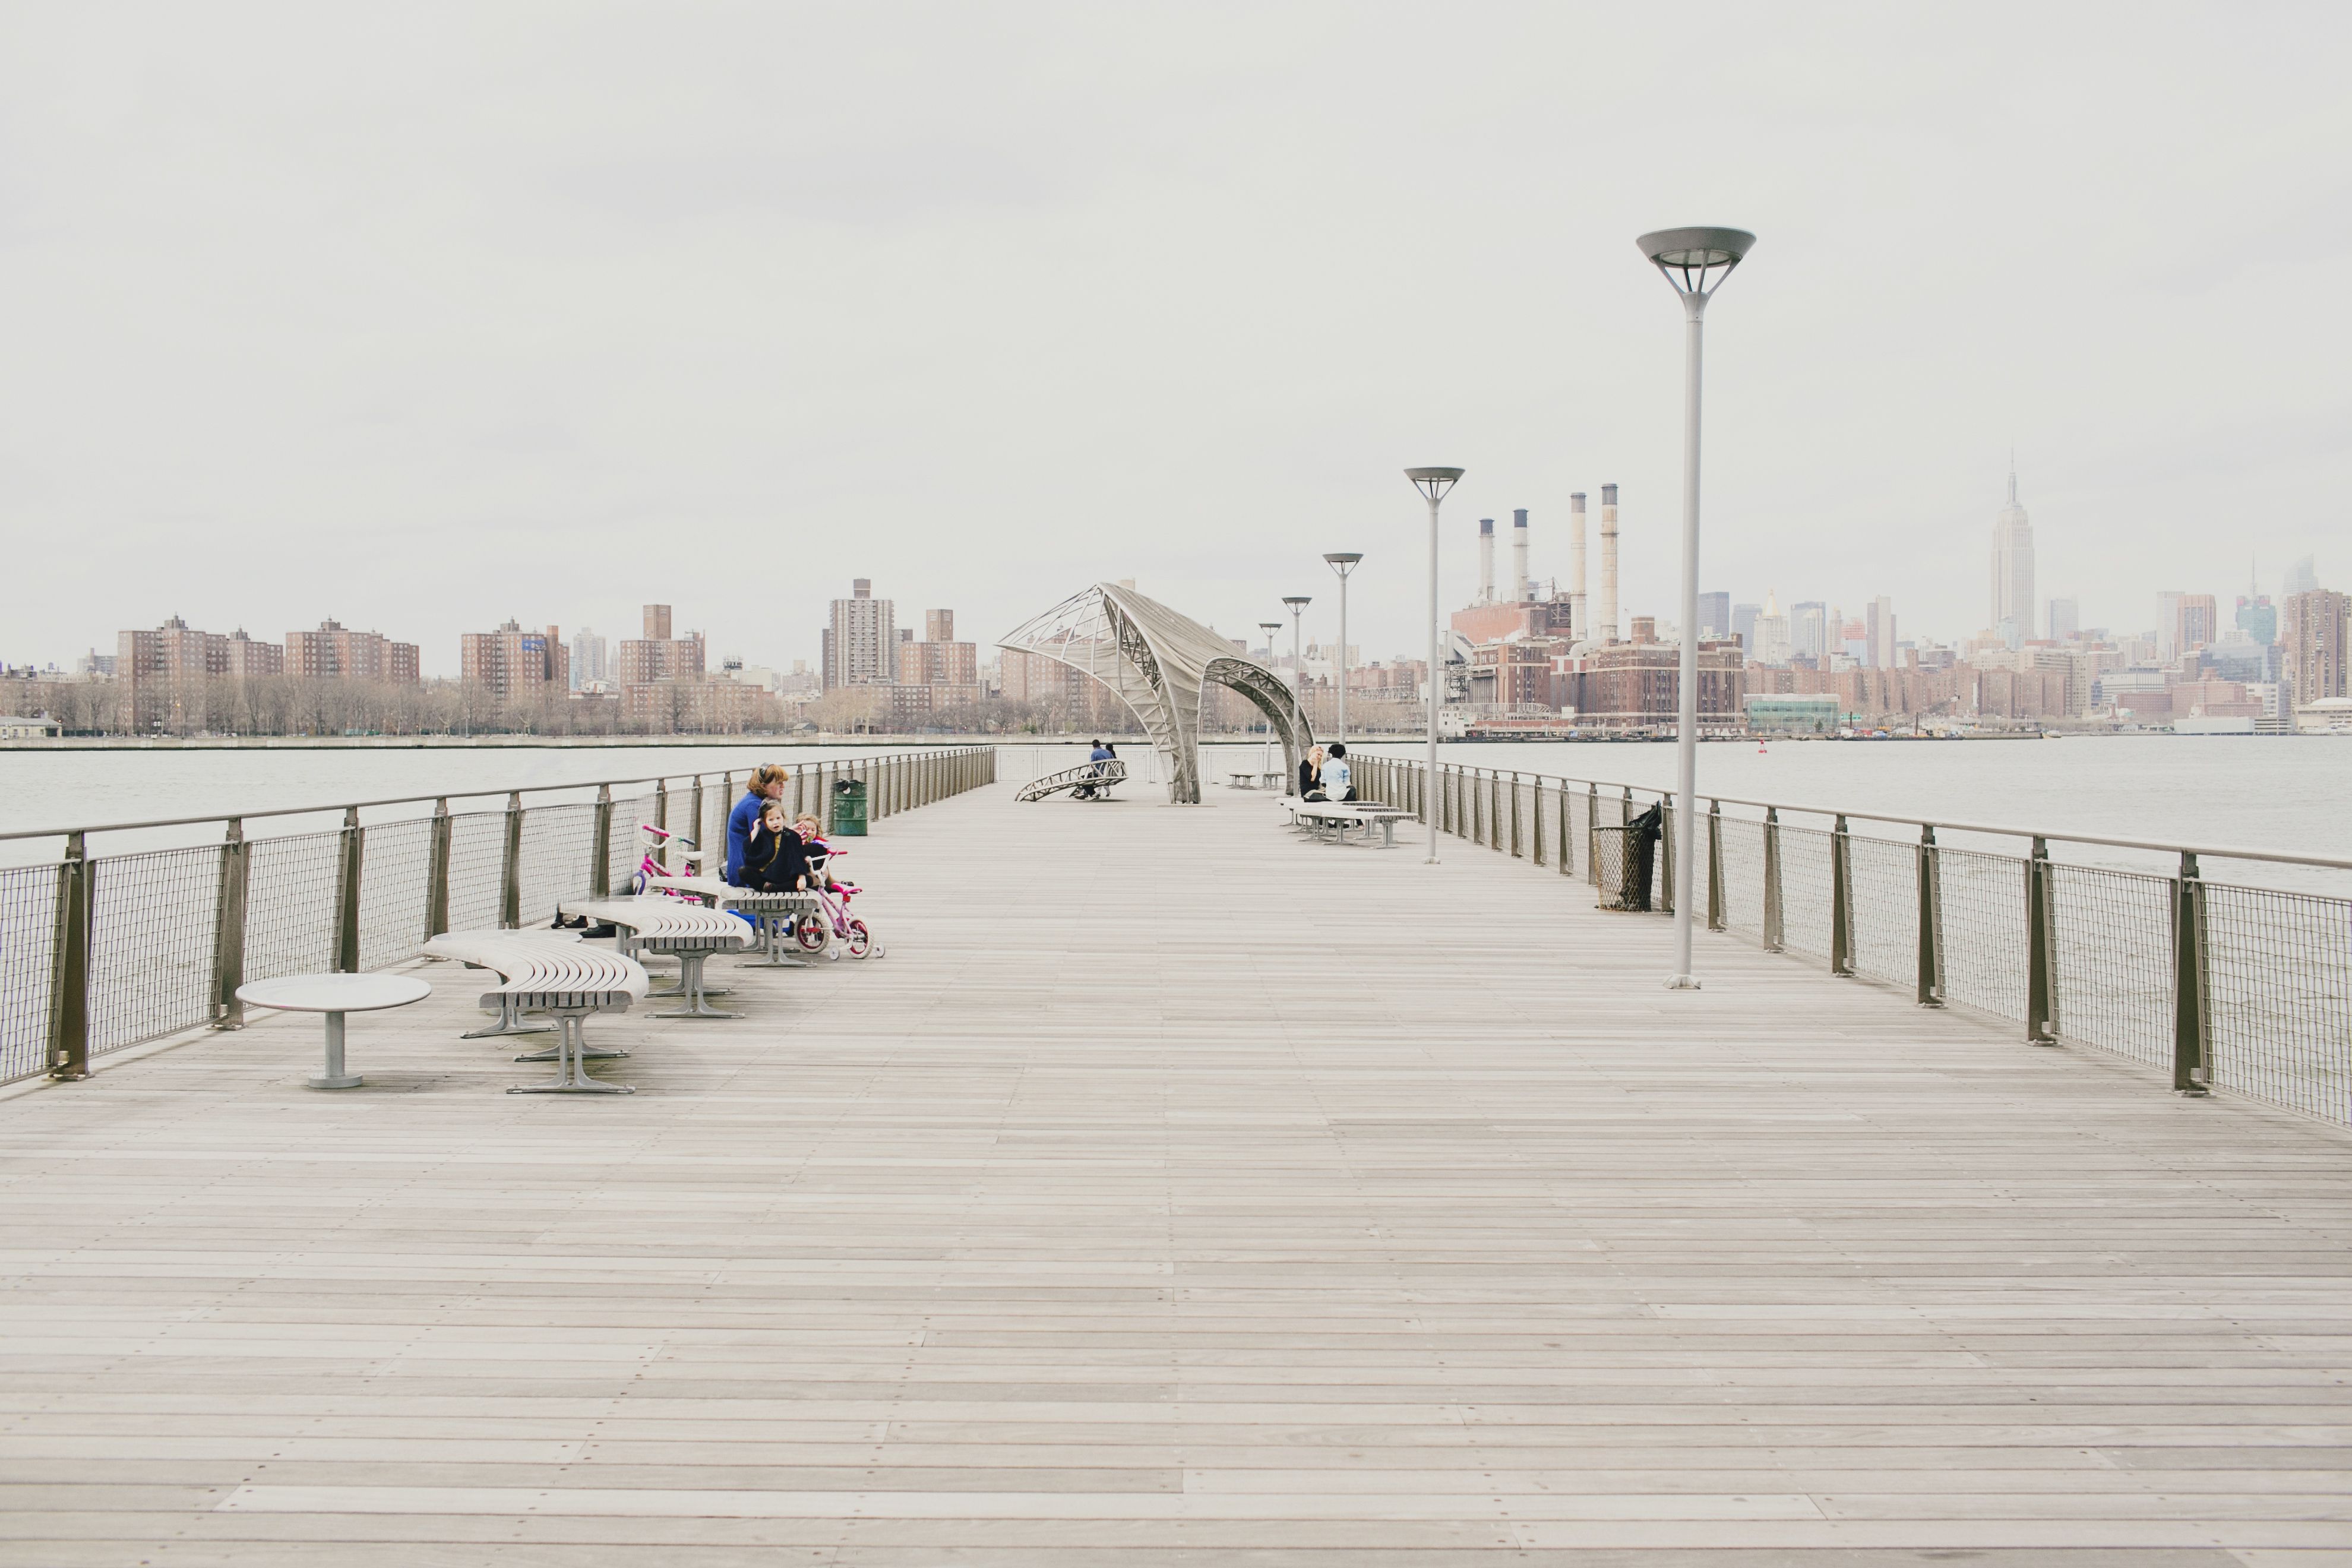 eleven five things williamsburg brooklyn waterfront. Black Bedroom Furniture Sets. Home Design Ideas